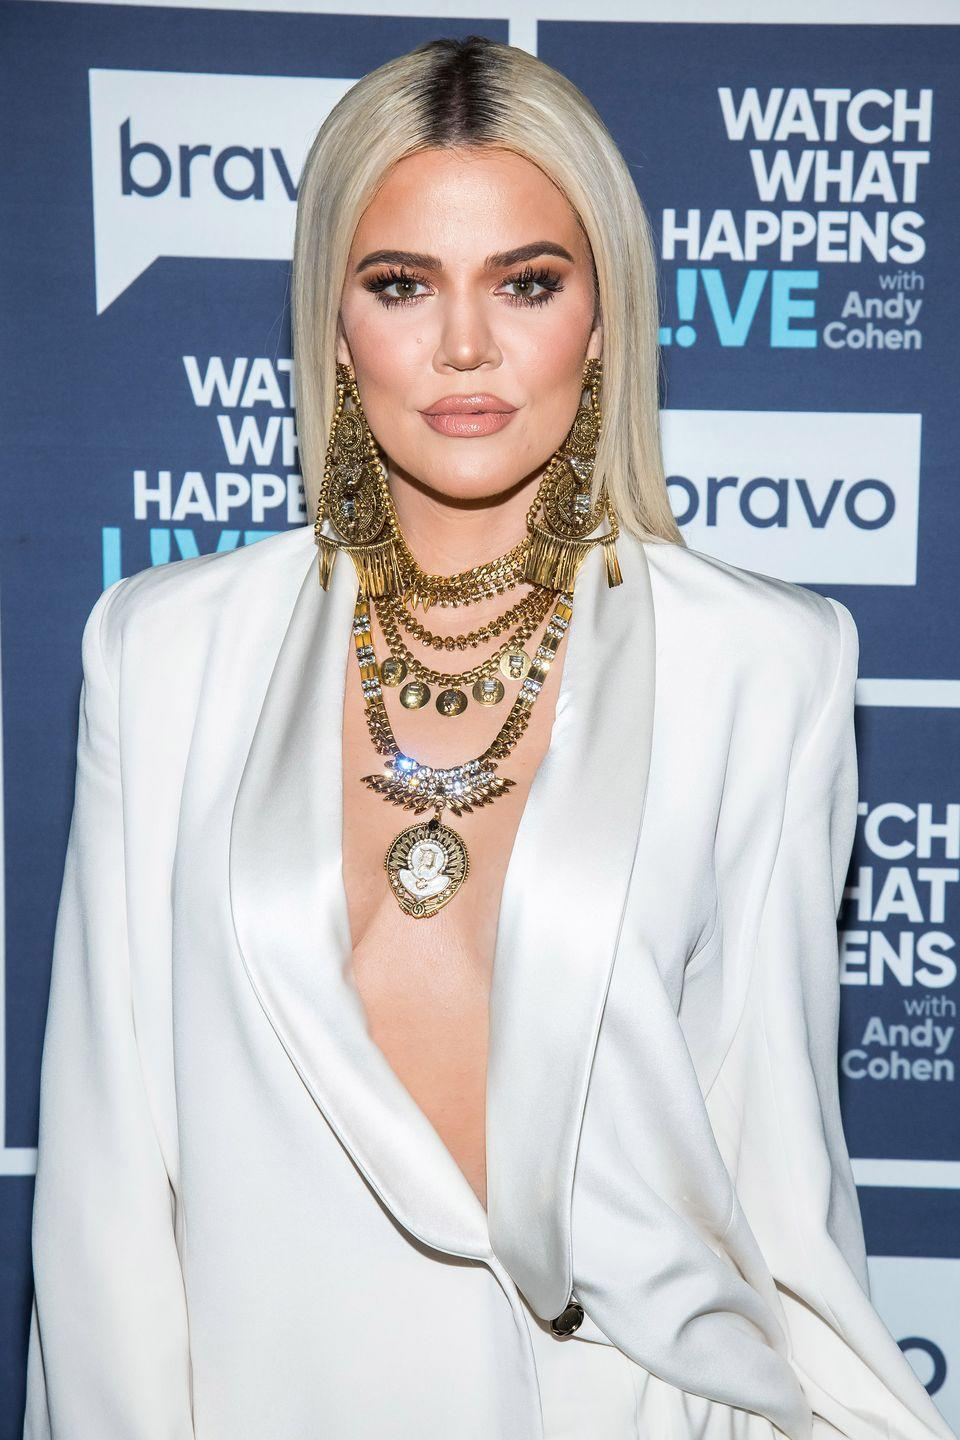 """<p>Though Koko has <a href=""""https://www.dailymail.co.uk/tvshowbiz/article-3508148/My-face-f-ed-Khloe-Kardashian-admits-facial-fillers-went-wrong-look-crazy.html"""" rel=""""nofollow noopener"""" target=""""_blank"""" data-ylk=""""slk:admitted to getting facial fillers"""" class=""""link rapid-noclick-resp"""">admitted to getting facial fillers</a>, she denied rumors that she got a nose job. In an interview with <em><a href=""""https://www.cosmopolitan.com/style-beauty/beauty/news/a54689/khloe-kardashian-is-for-plastic-surgery/"""" rel=""""nofollow noopener"""" target=""""_blank"""" data-ylk=""""slk:Cosmopolitan"""" class=""""link rapid-noclick-resp"""">Cosmopolitan</a></em>, Khloé claimed that she was """"a fan of plastic surgery,"""" but she believes people should go through """"proper channels first.</p><p>""""Plastic surgery should be viewed almost like makeup, because we're all putting on a f*cking mask basically every day anyway,"""" she said.</p>"""